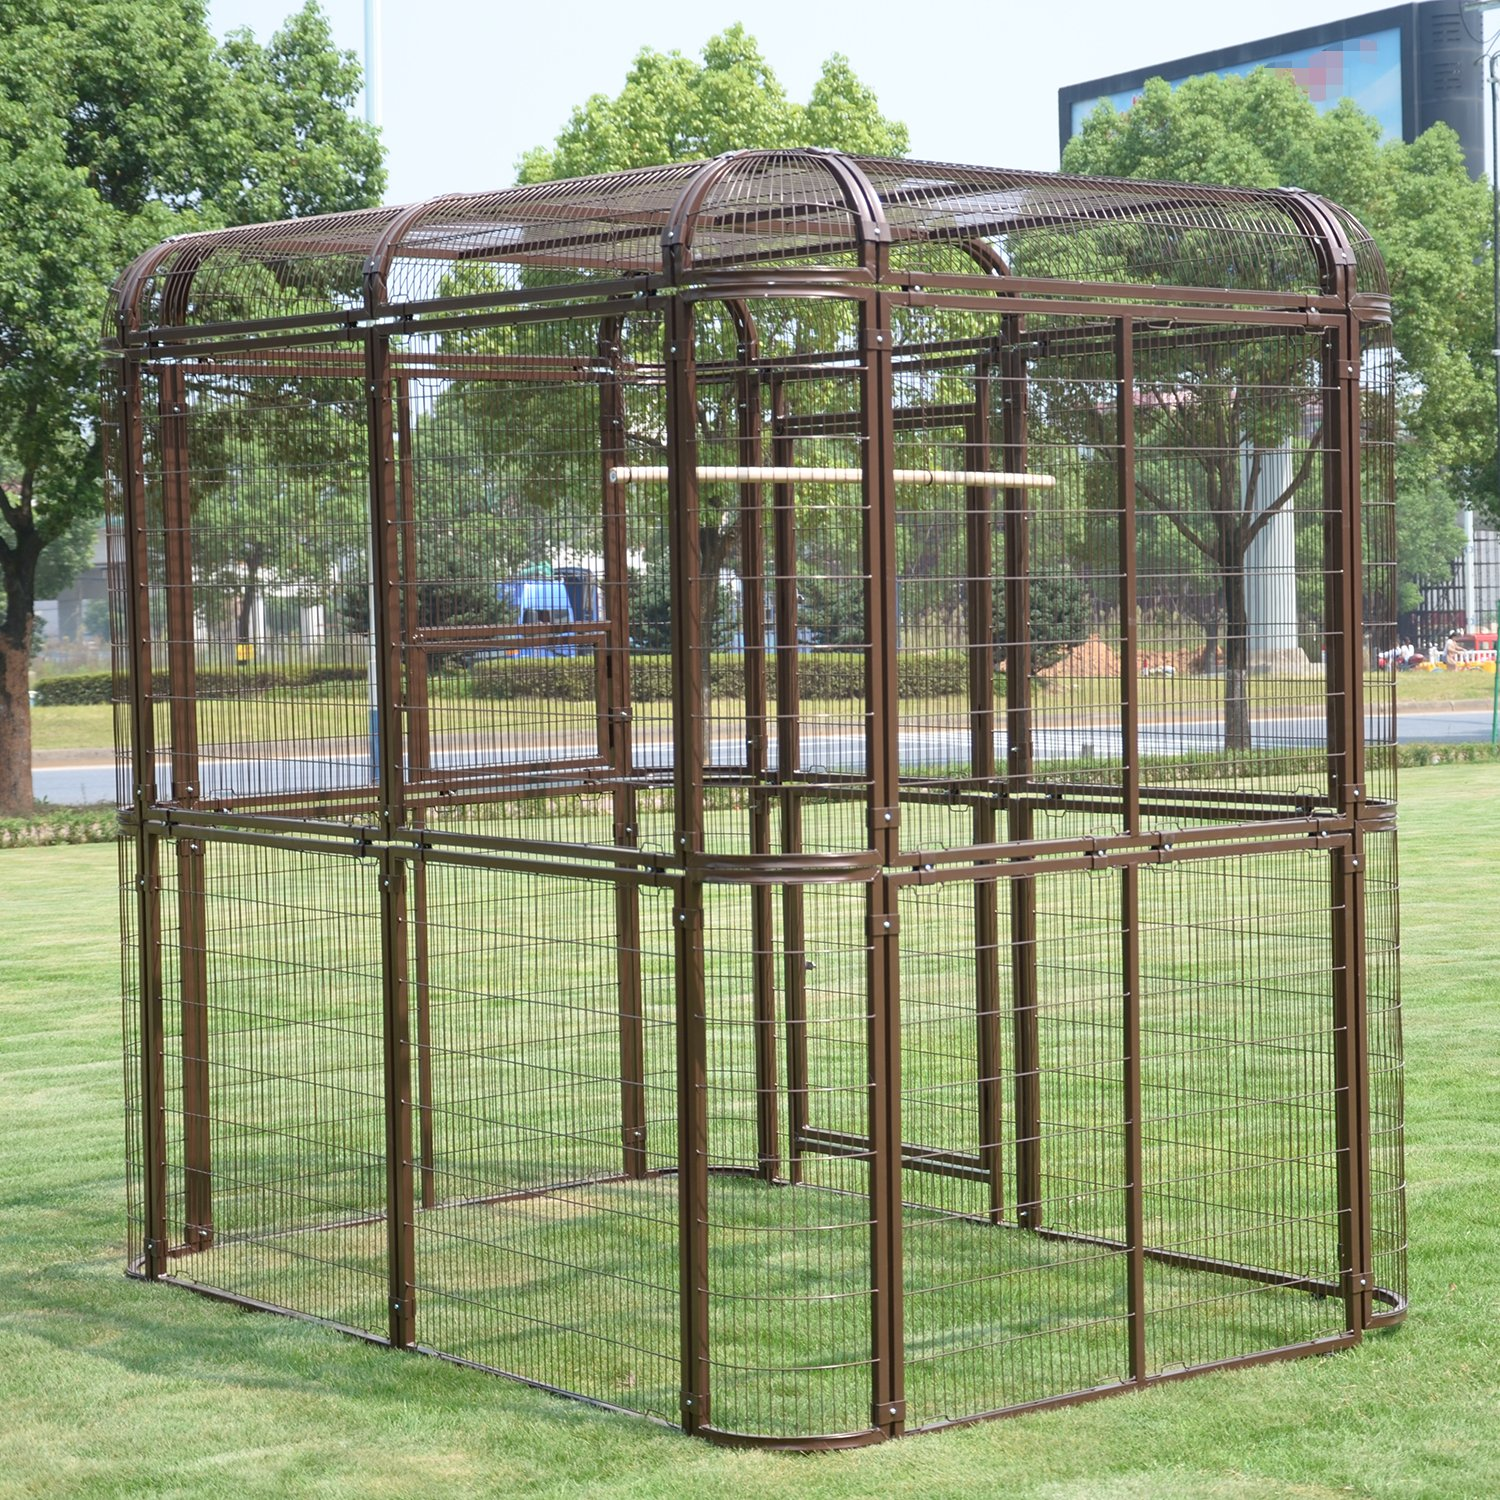 Walcut Heavy Duty Extra Large Bird Cage Walk In Aviary Pet House for Parrot Cockatiel Macaw